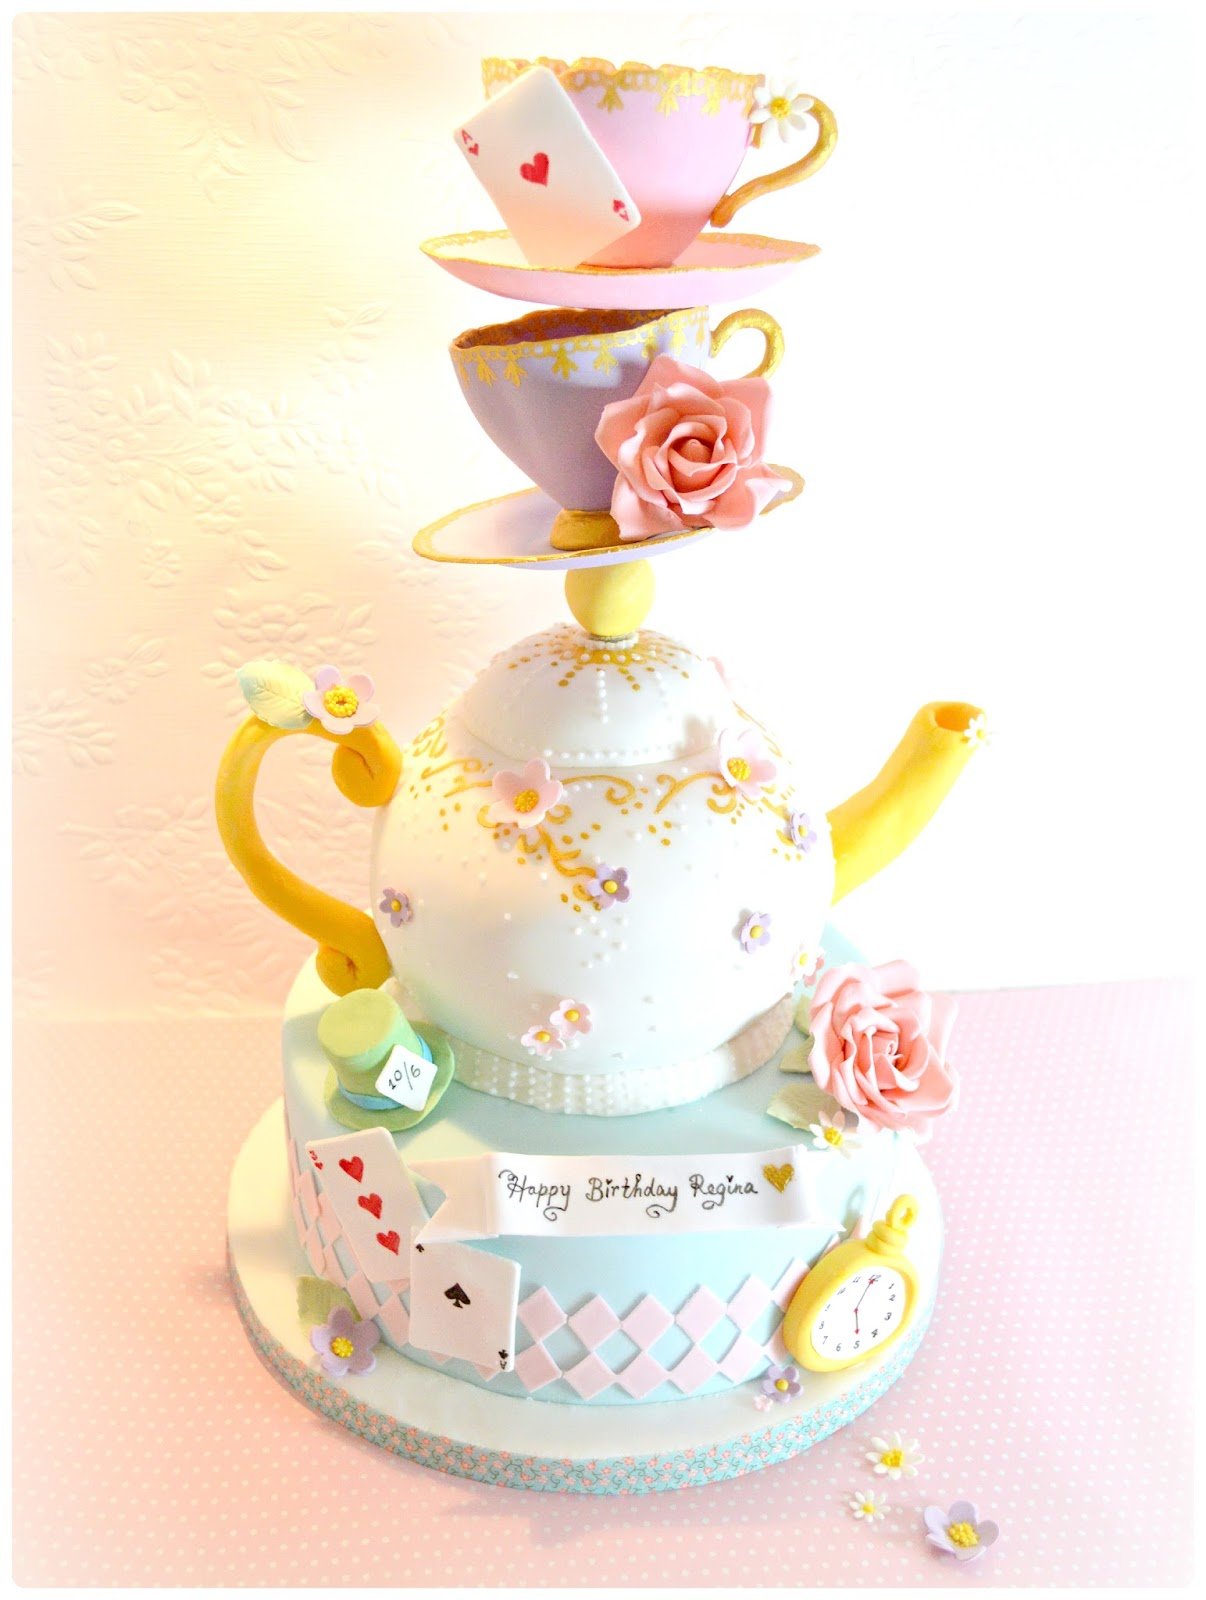 Cake clipart mad hatter. Topsy turvy teapot and